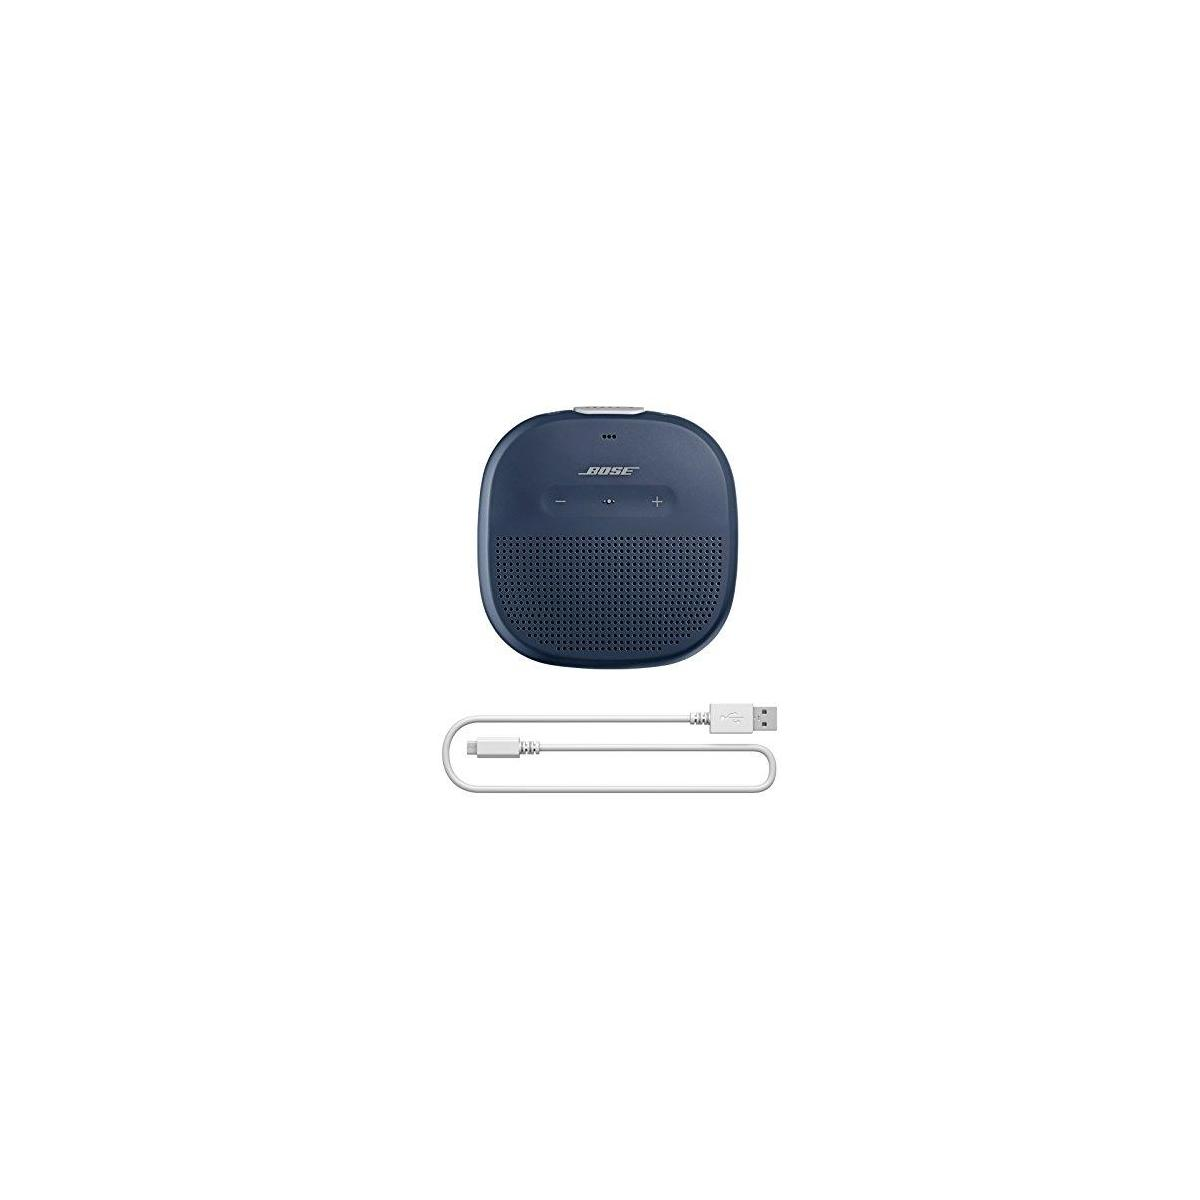 Bose SoundLink Micro, Portable Outdoor Speaker, (Wireless Bluetooth Connectivity) - ANY COLOR